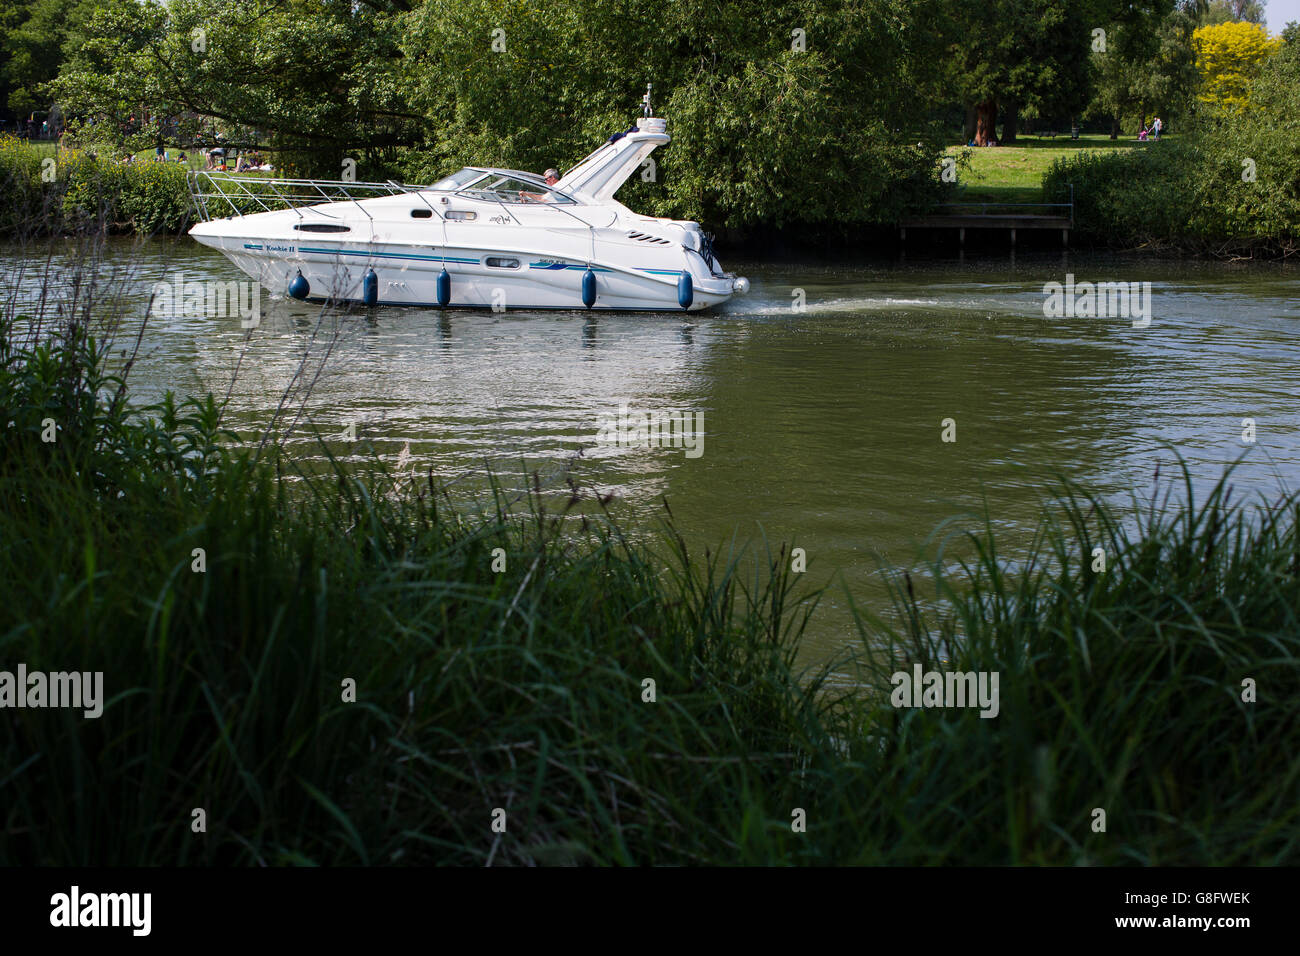 A small motor boat sailing on the river thames. - Stock Image